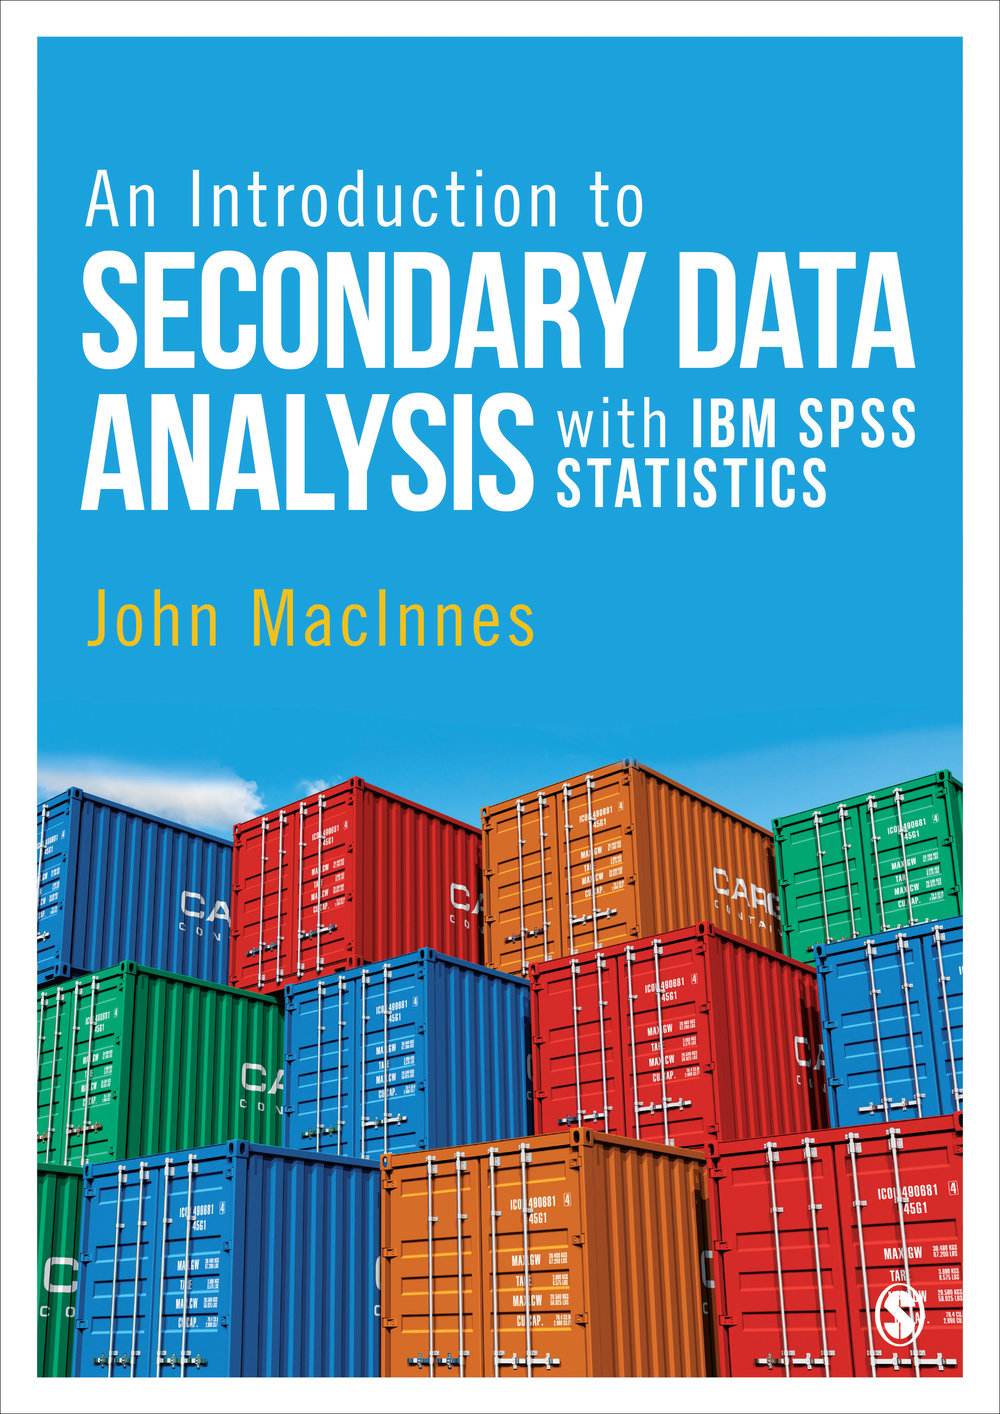 An Introduction to Secondary Data Analysis with IBM SPSS Statistics